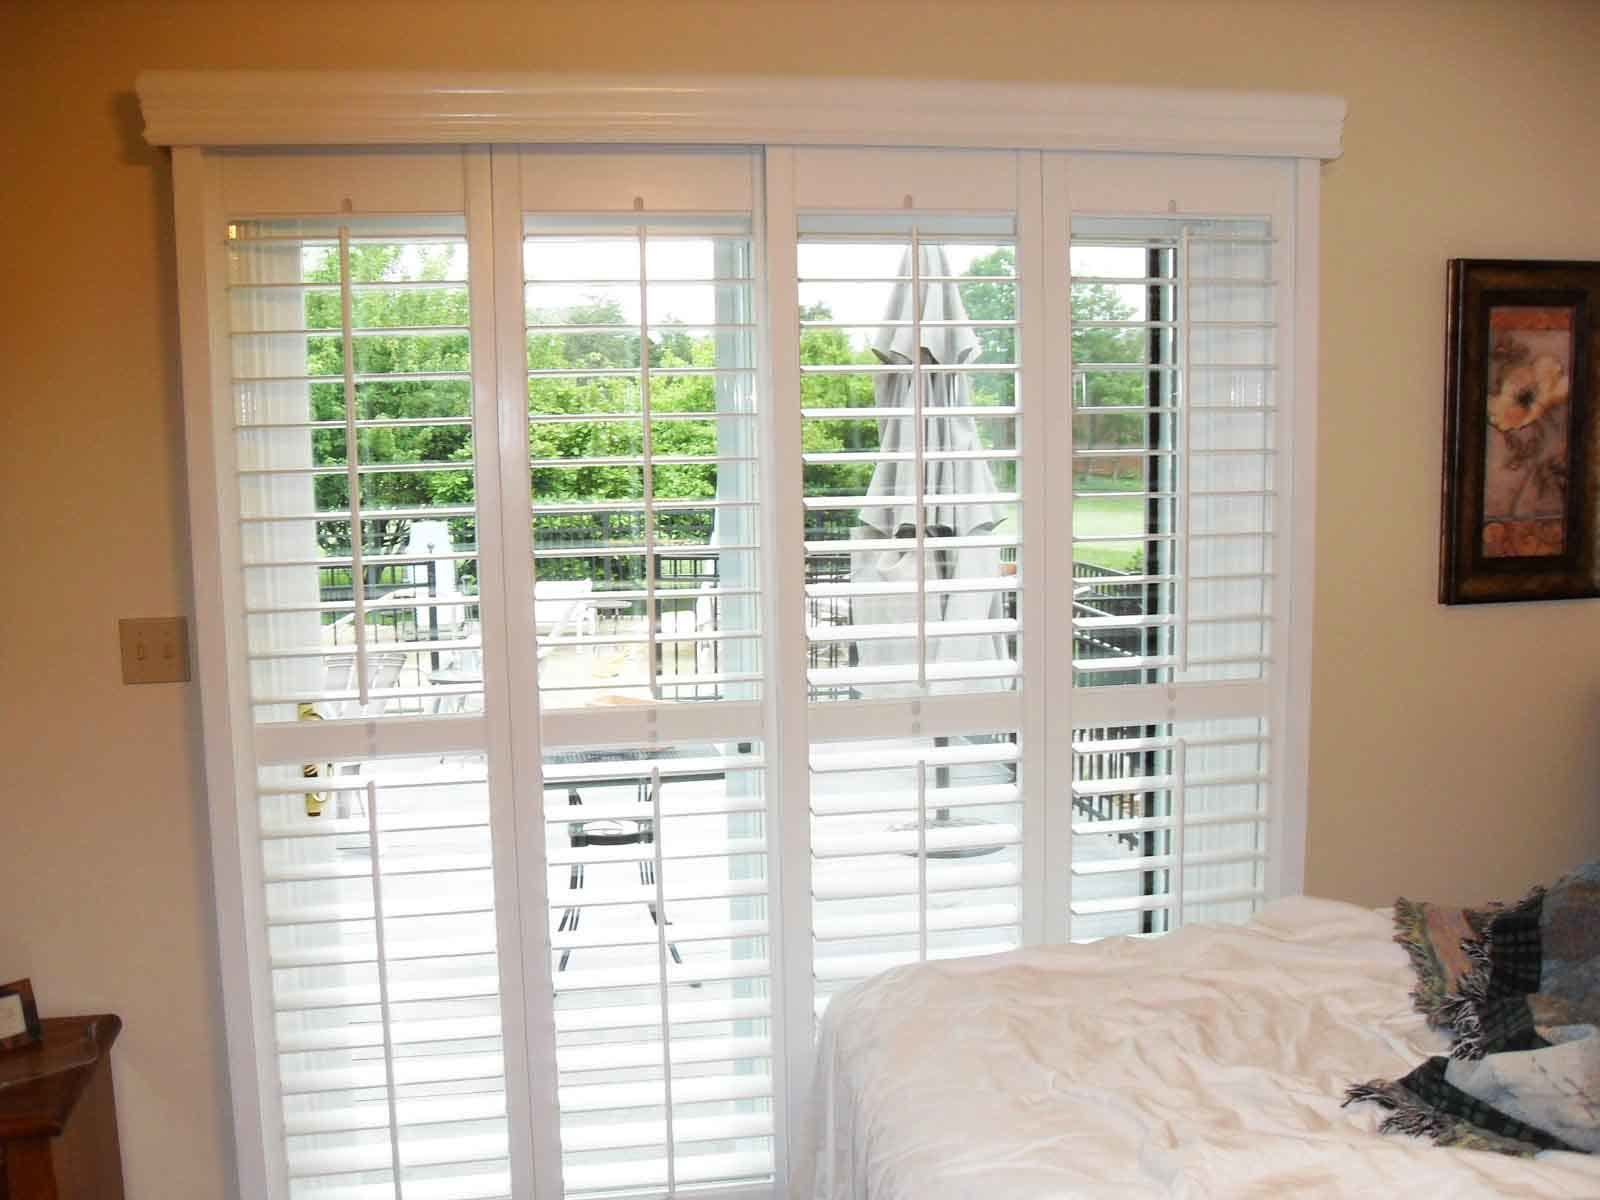 Wood Blinds For Sliding Glass Doorssliding glass door blinds